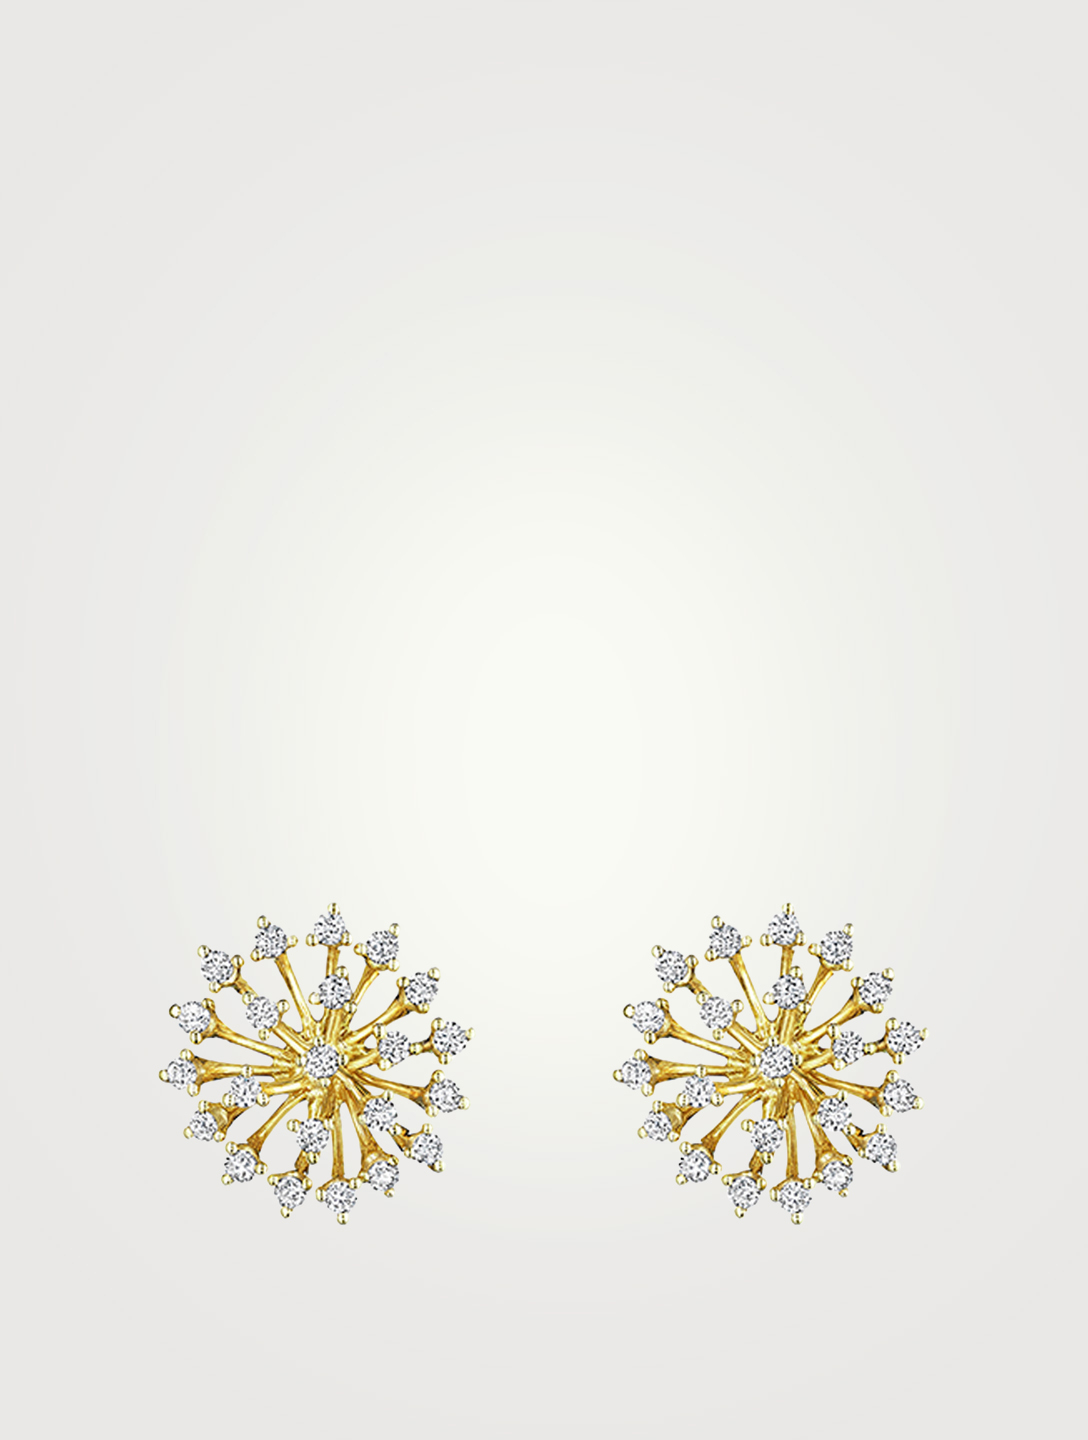 HUEB Boucles d'oreilles Luminus en or 18 ct serties de diamants Femmes Métallique